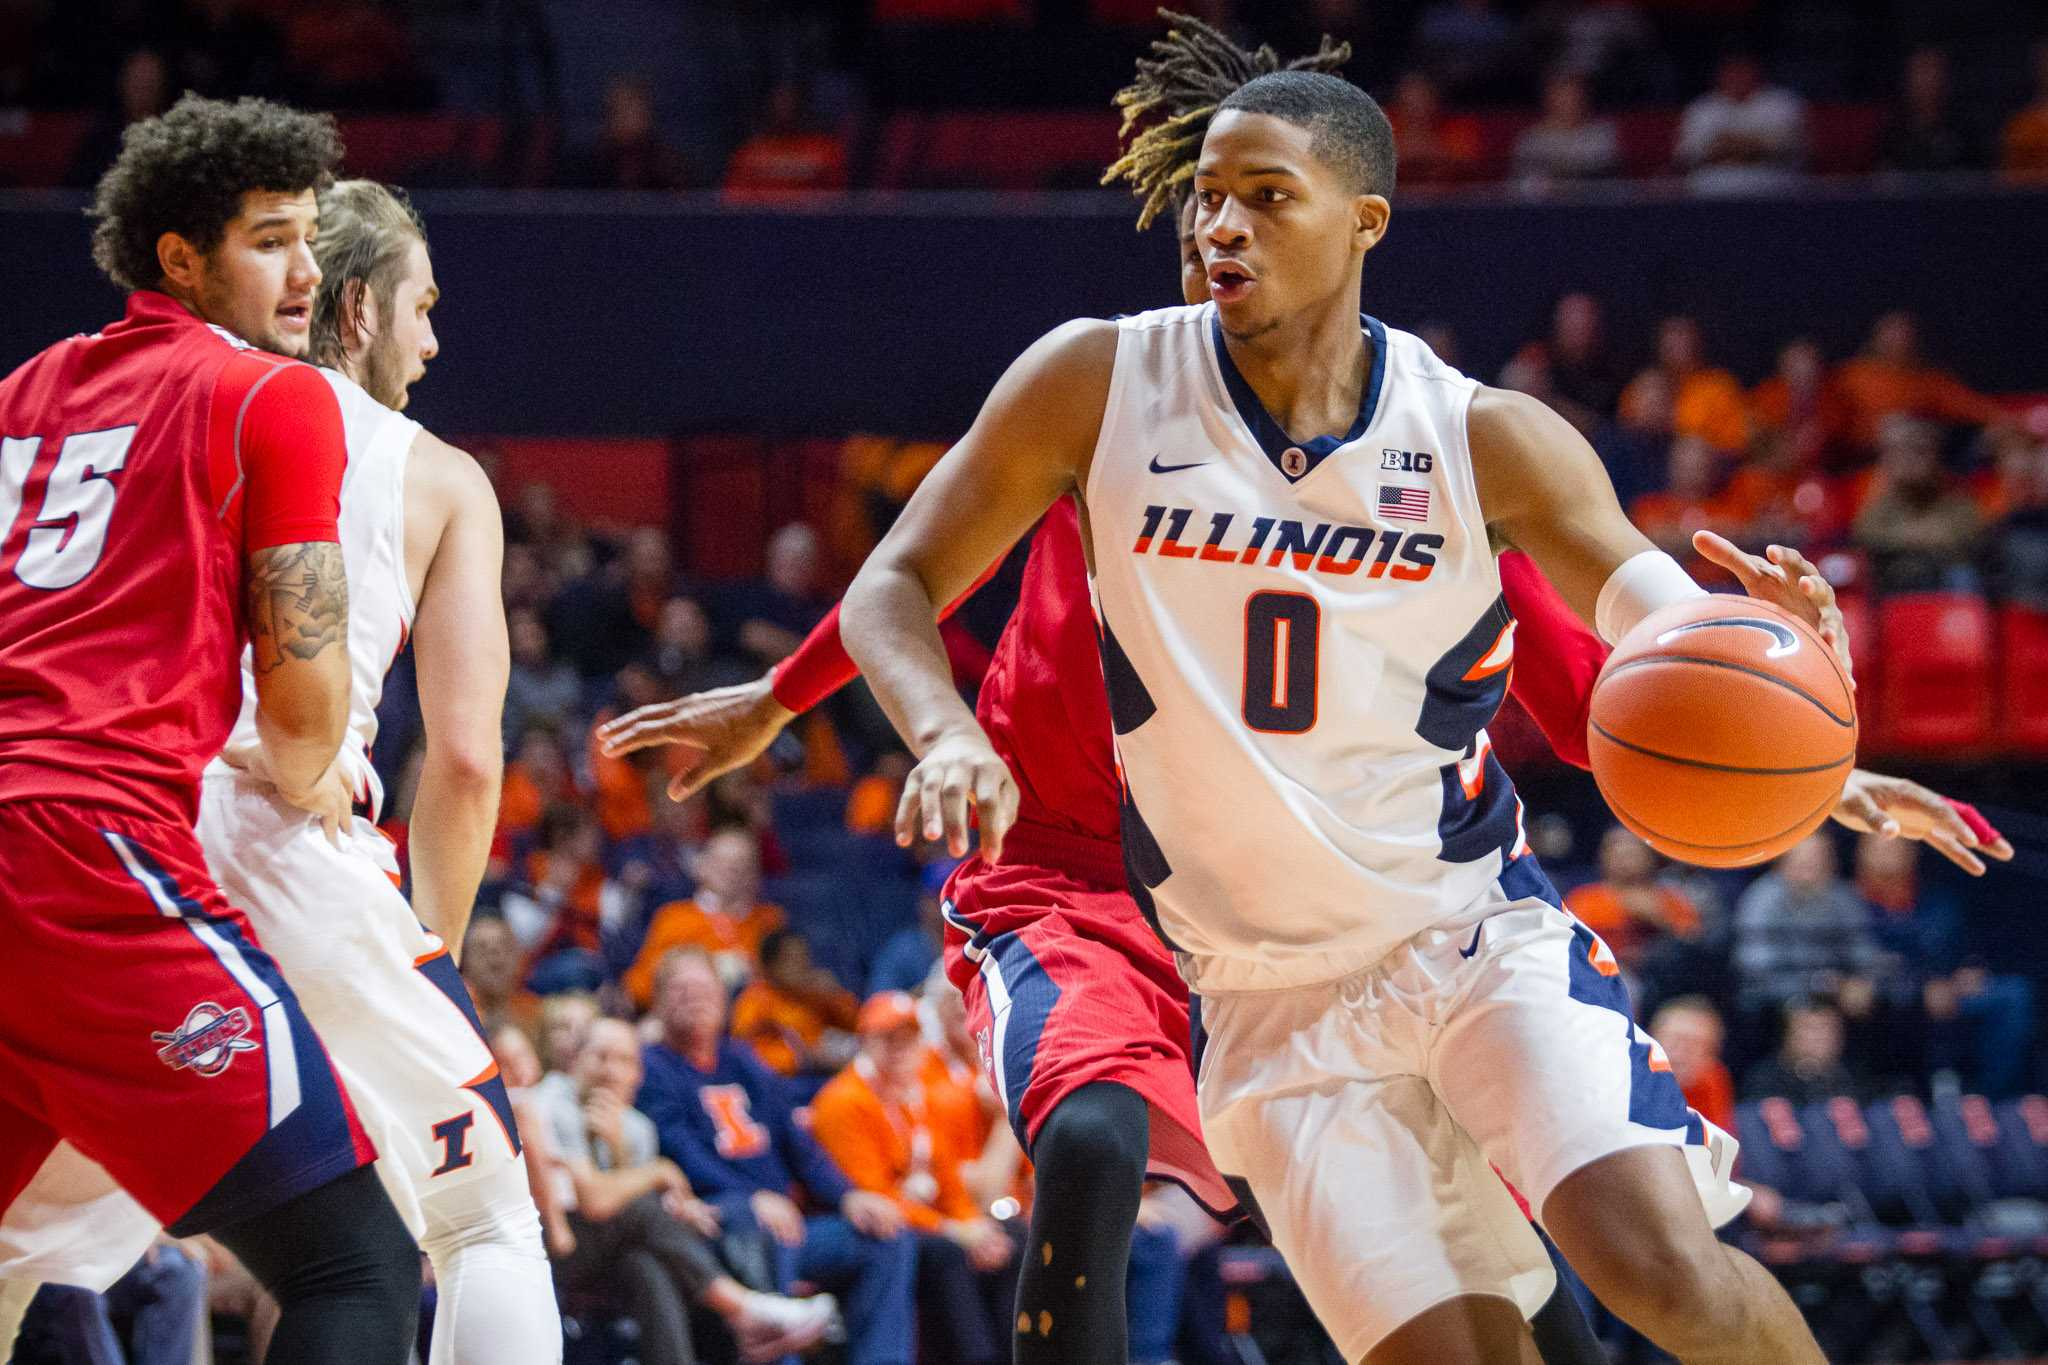 Illinois' D.J. Williams drives to the basket against Detroit at State Farm Center on Nov. 18.